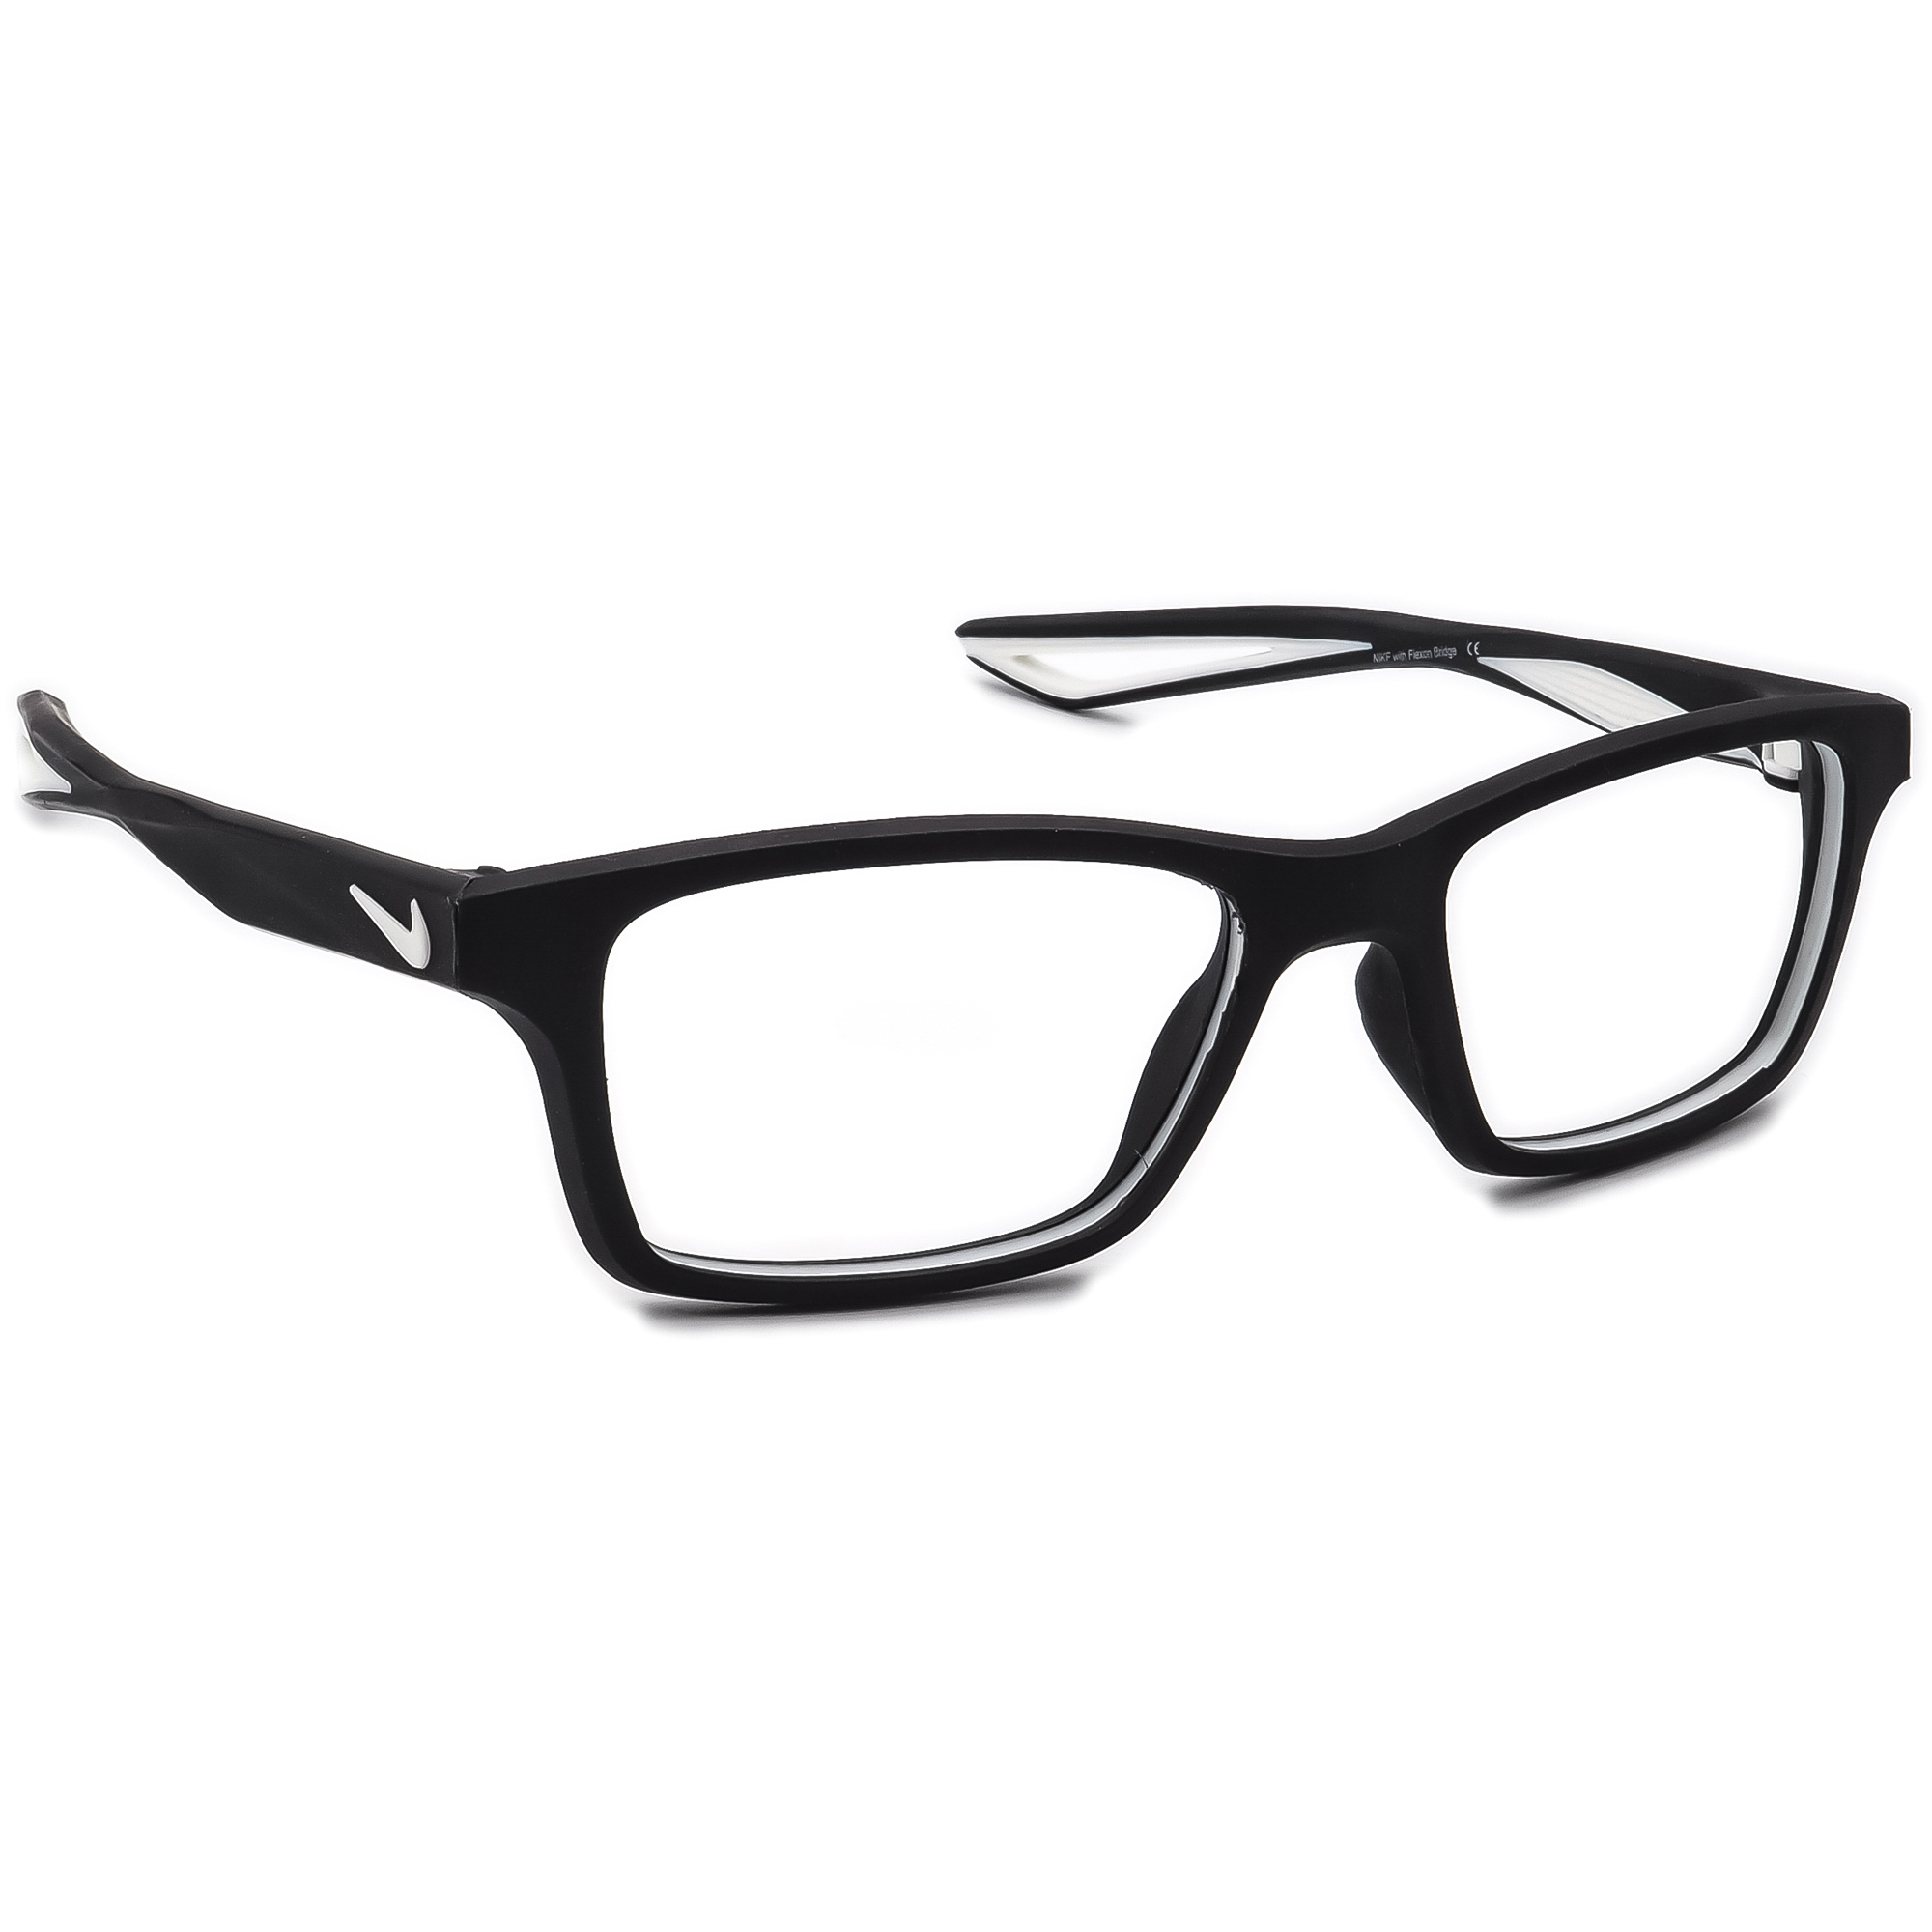 Nike With Flexon Bridge 4679 003 Eyeglasses